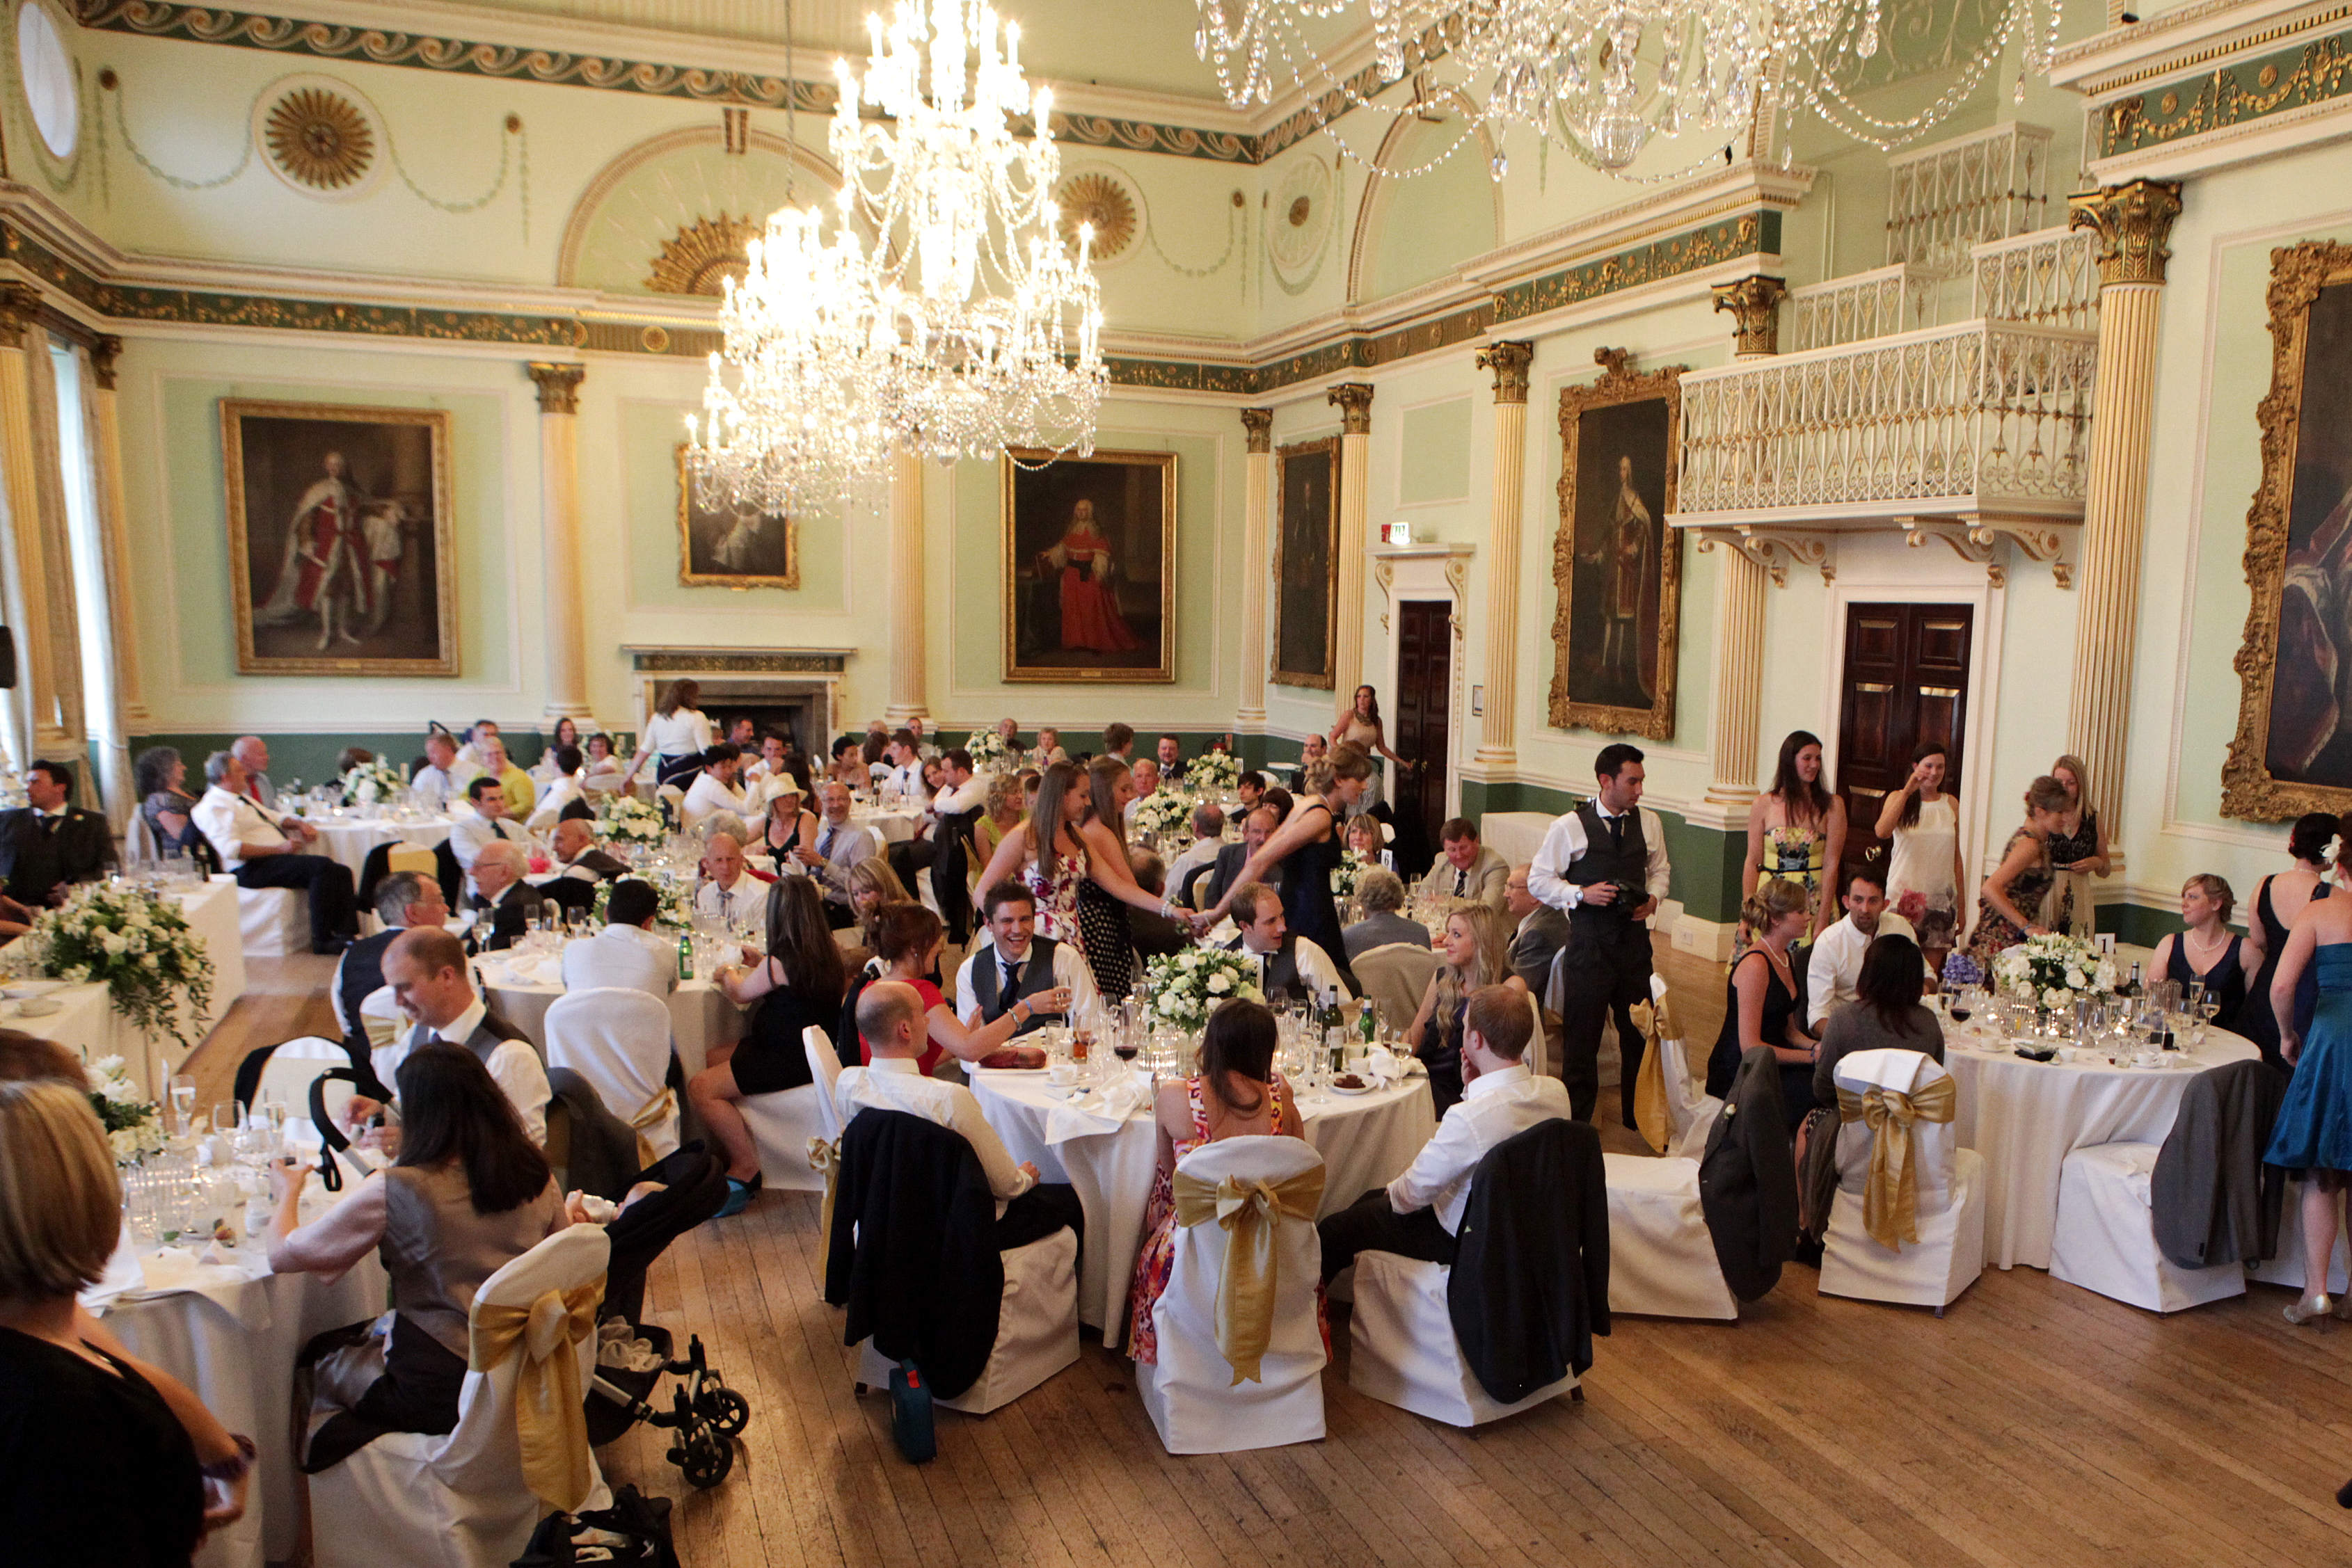 Image: Guildhall Banqueting Room, Lee Niel